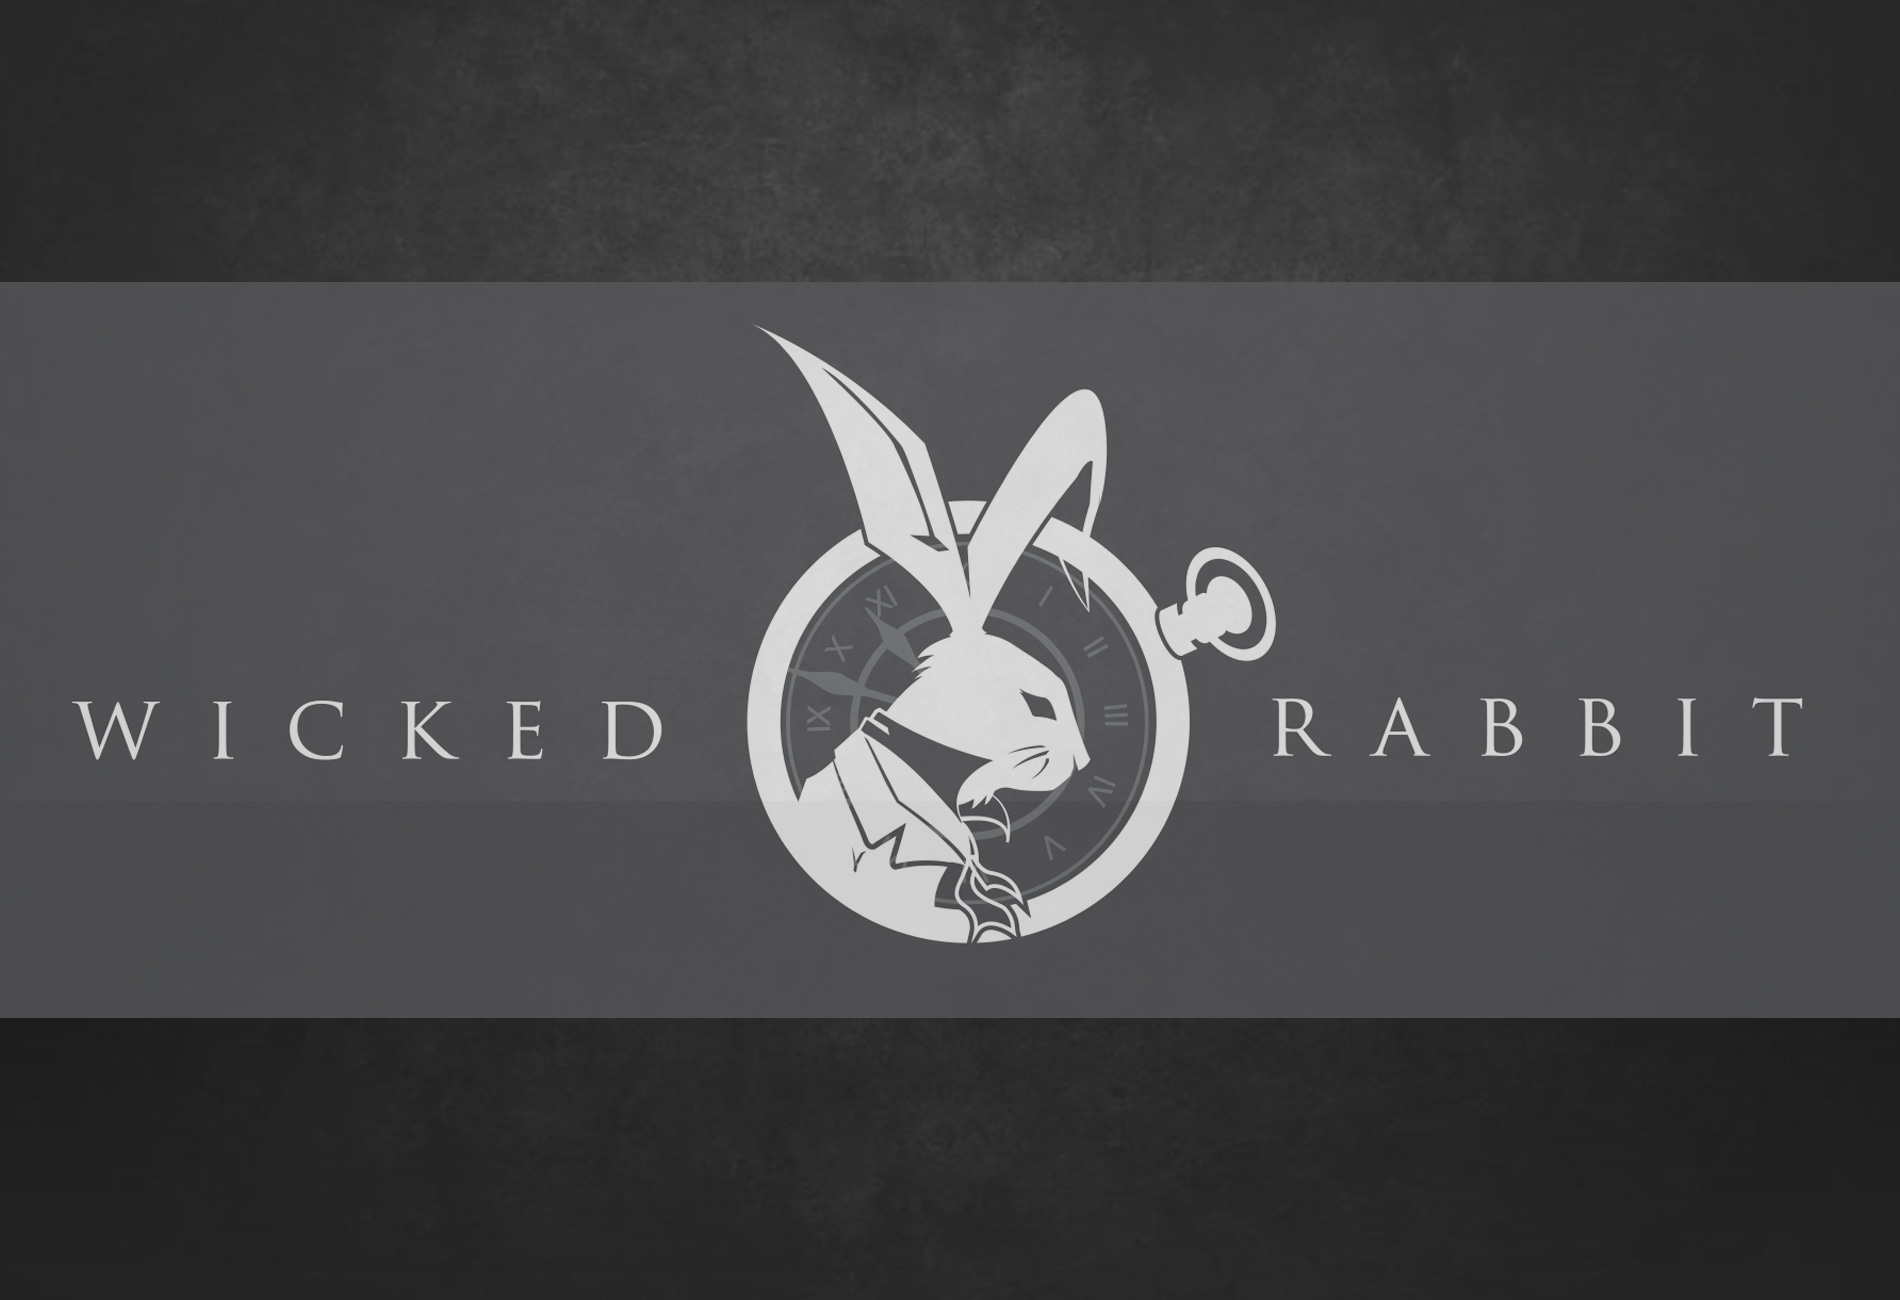 Wicked Rabbit logo